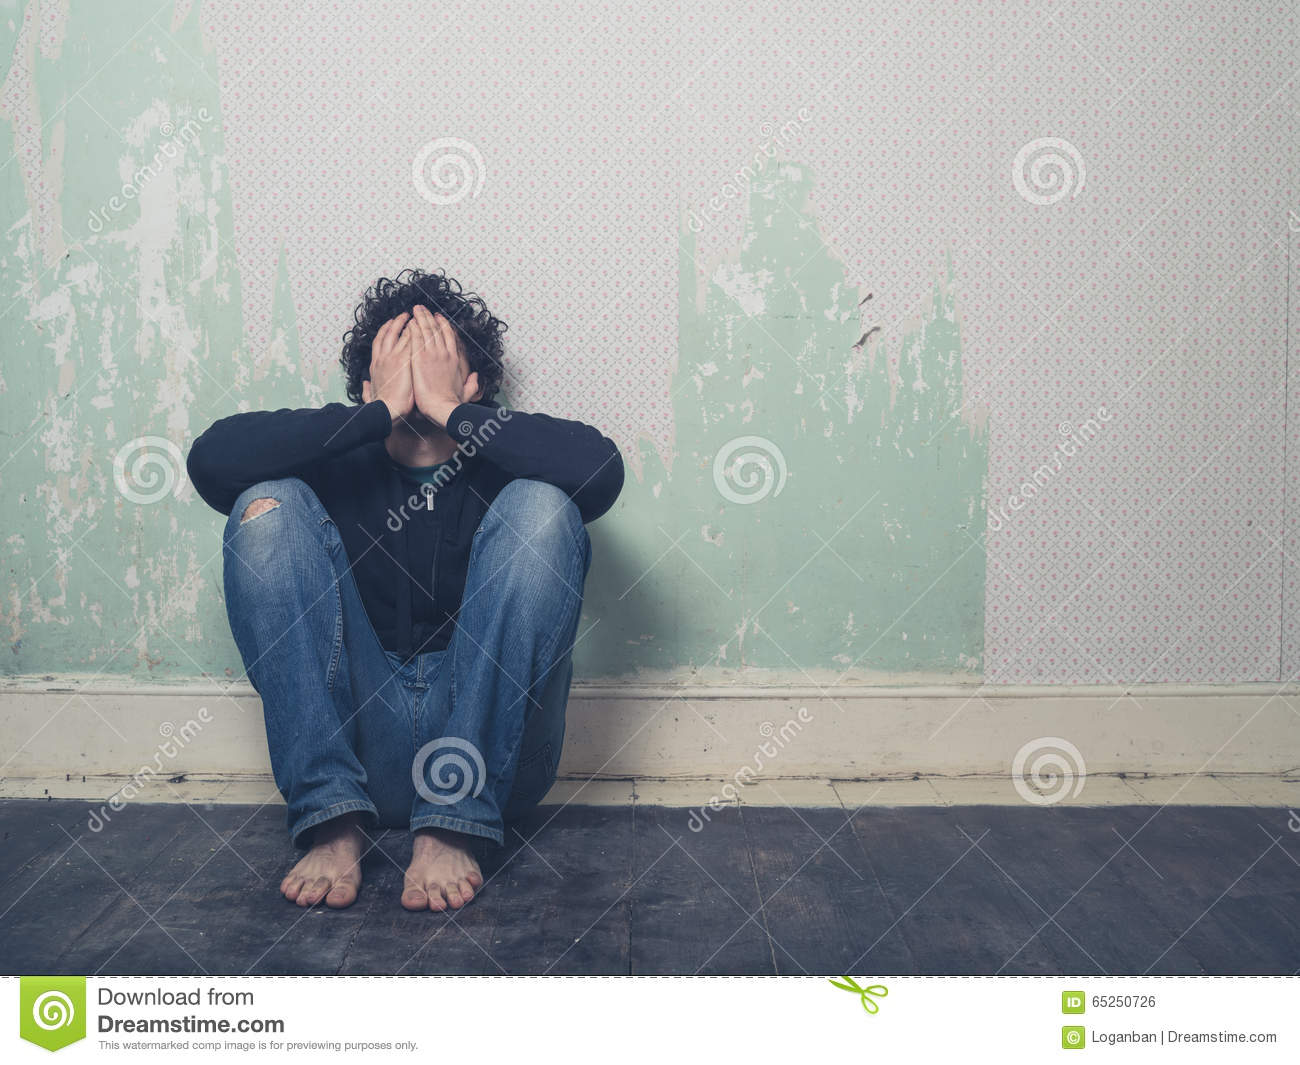 Sad young man in empty room